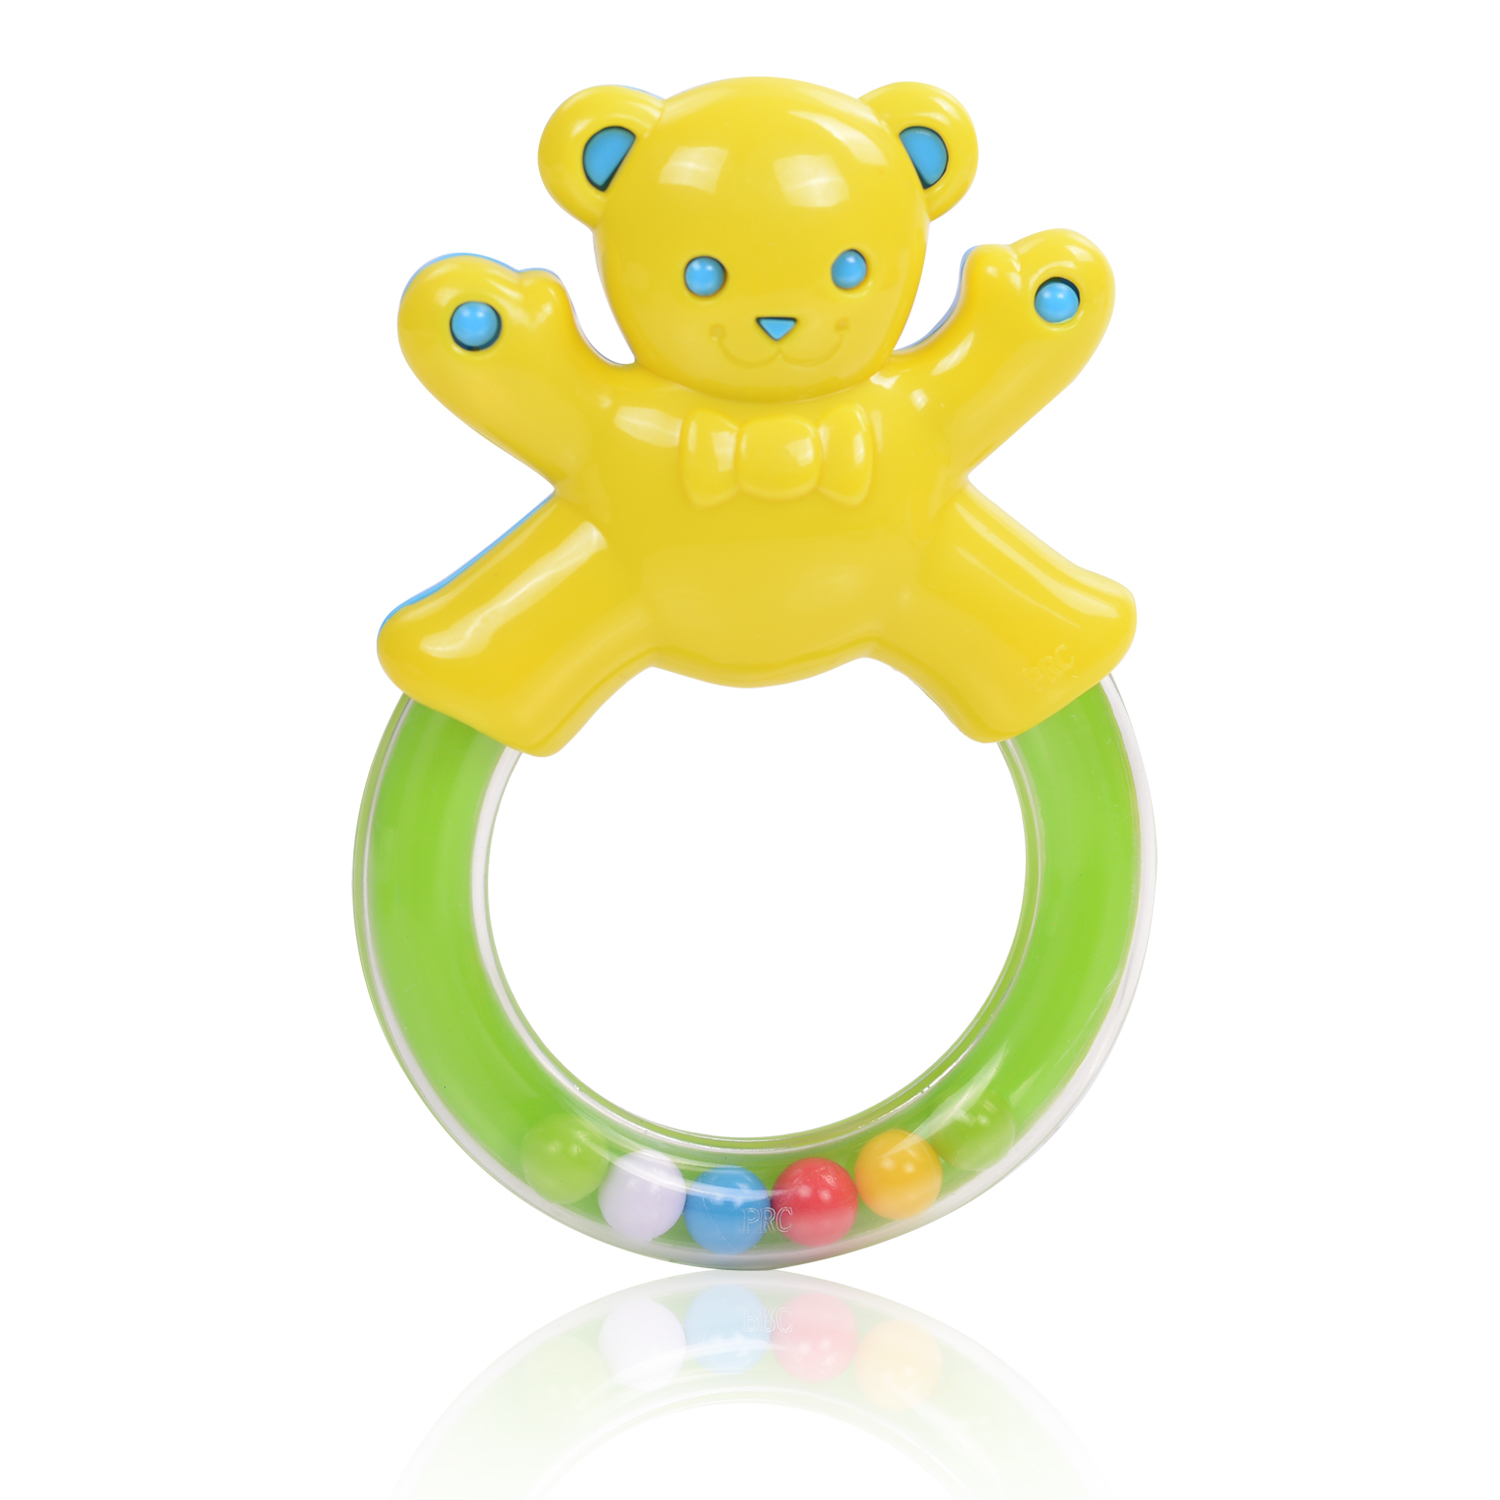 Baby Rattle Toys : Baby rattle clipart suggest